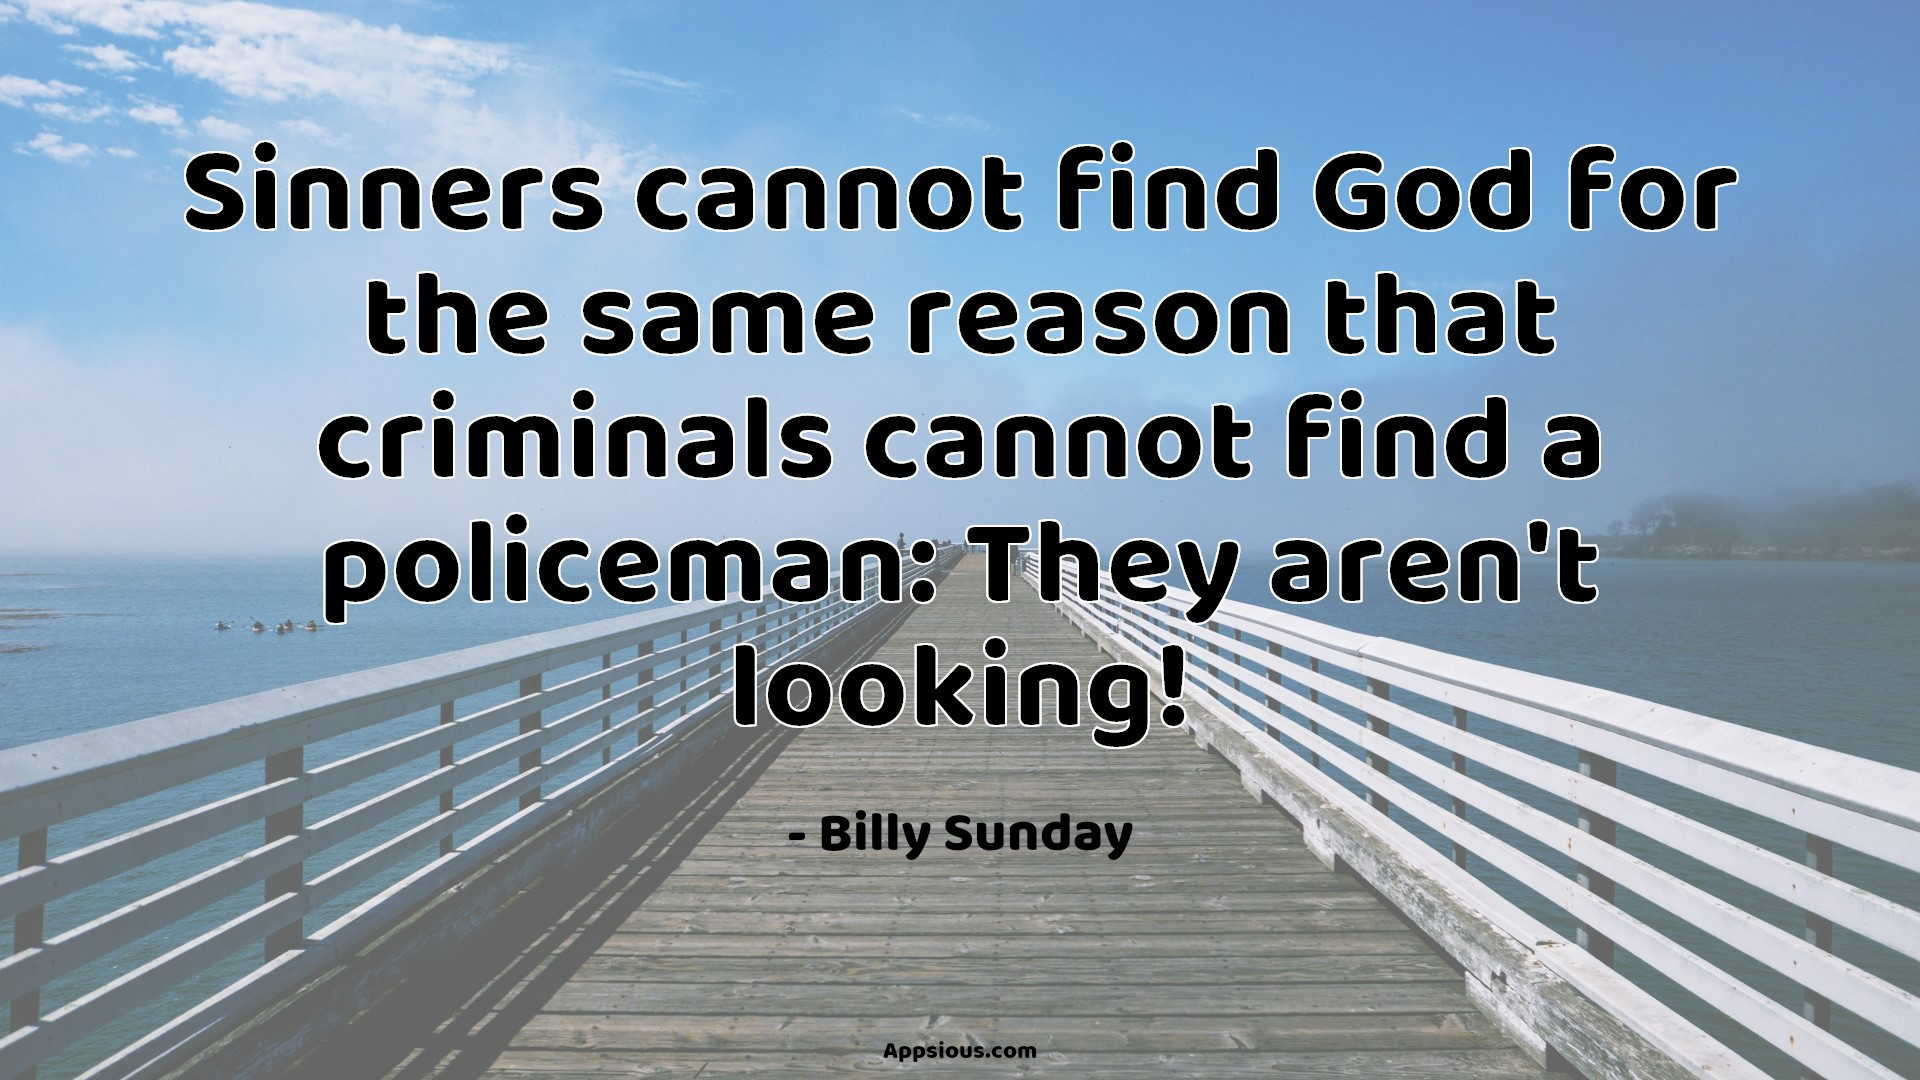 Sinners cannot find God for the same reason that criminals cannot find a policeman: They aren't looking!